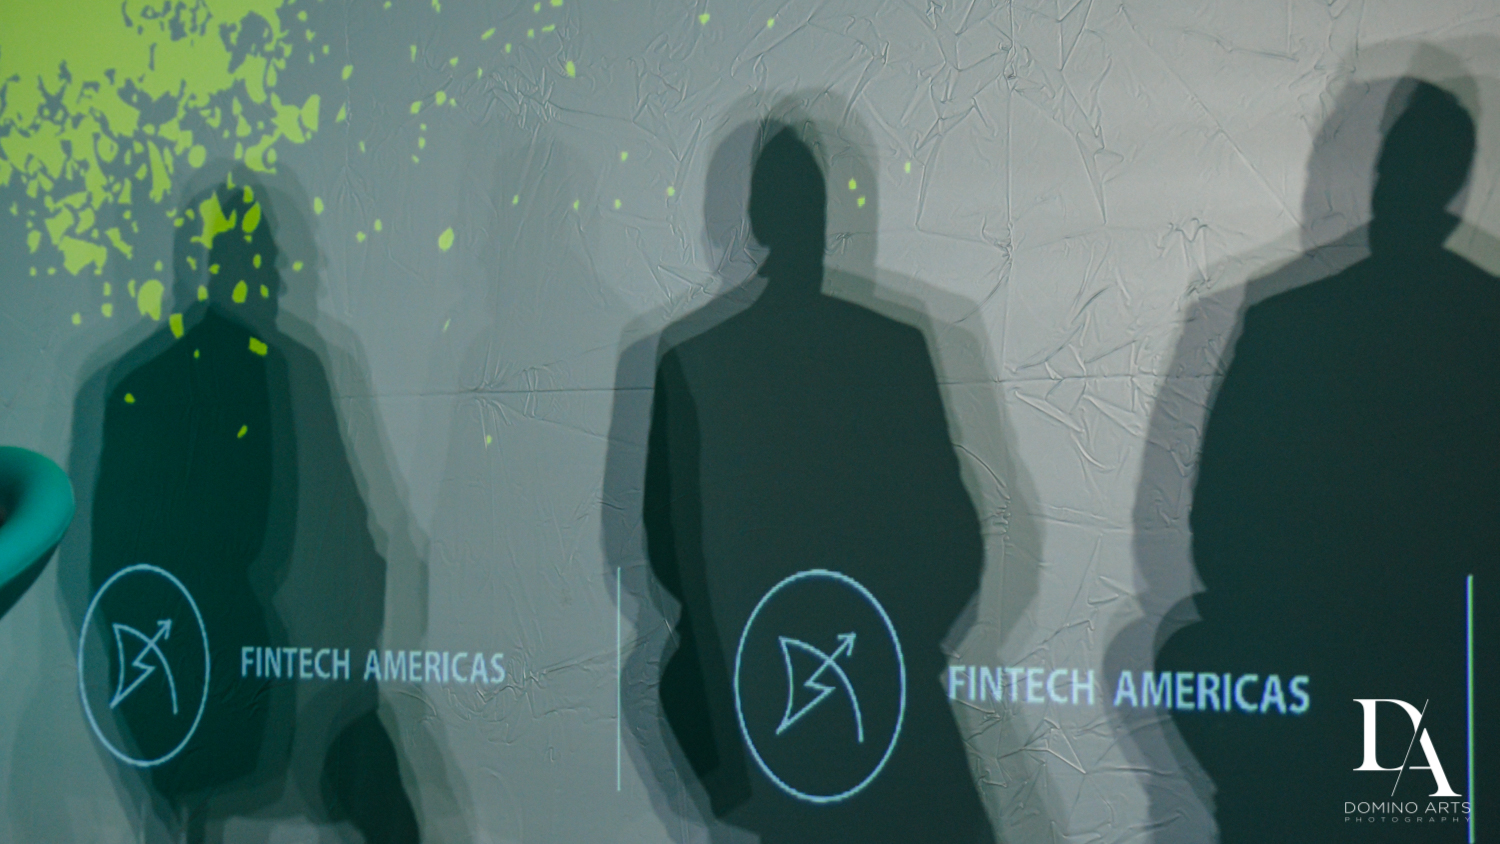 creative pictures at Fintech Americas Banking Conference Miami by Domino Arts Photography